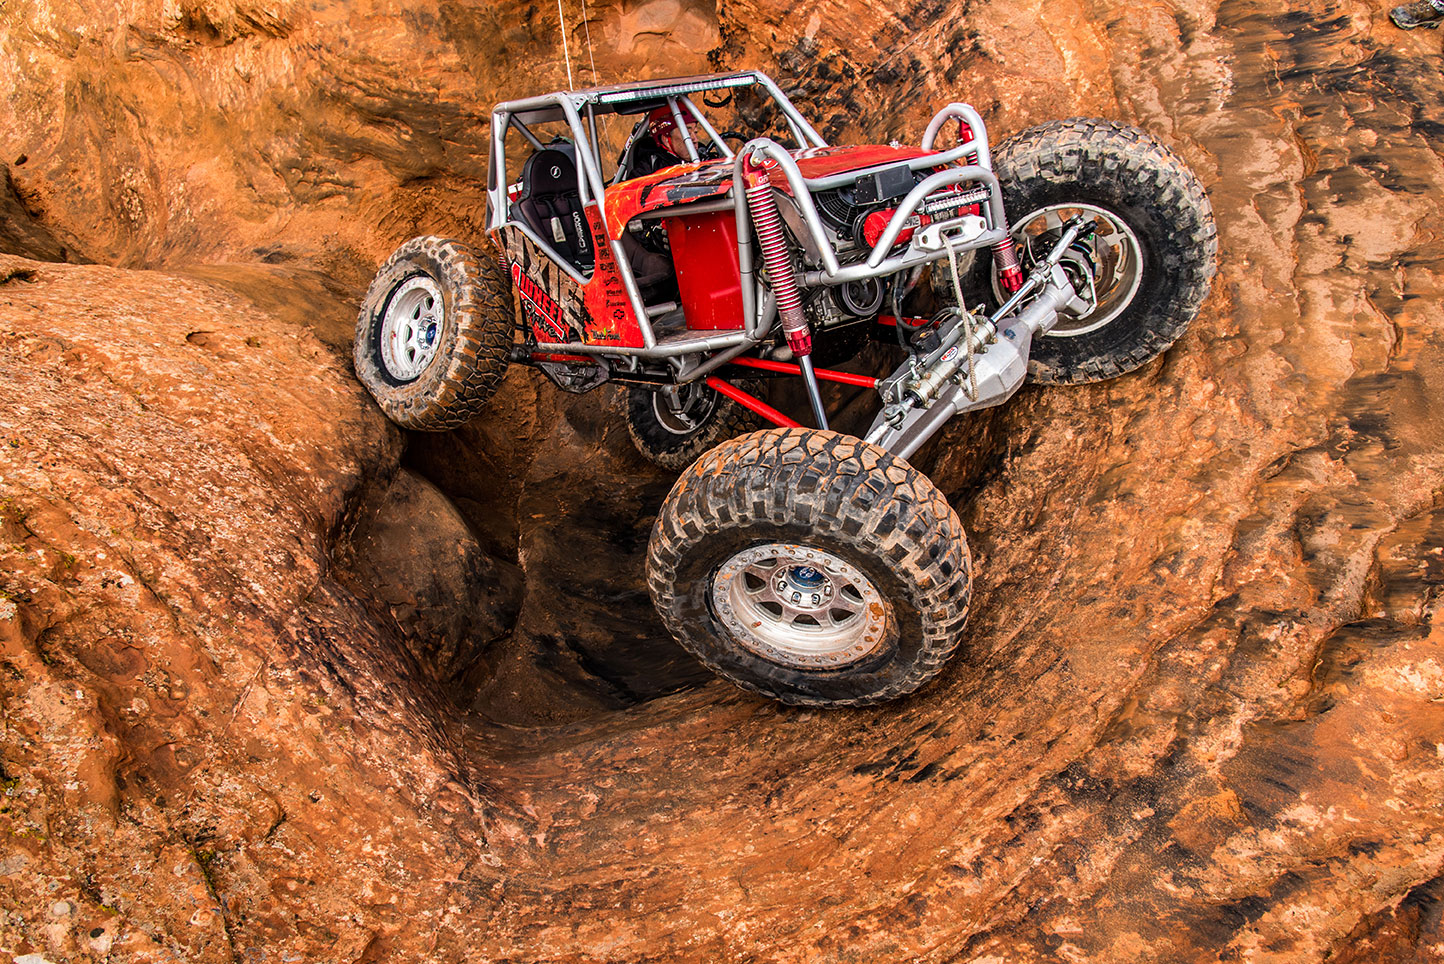 Rock Buggy, Crawler, Sand Hollow Soup Bowl, Utah, Off Road, Automobile, Adventure Lifestyle Photographer